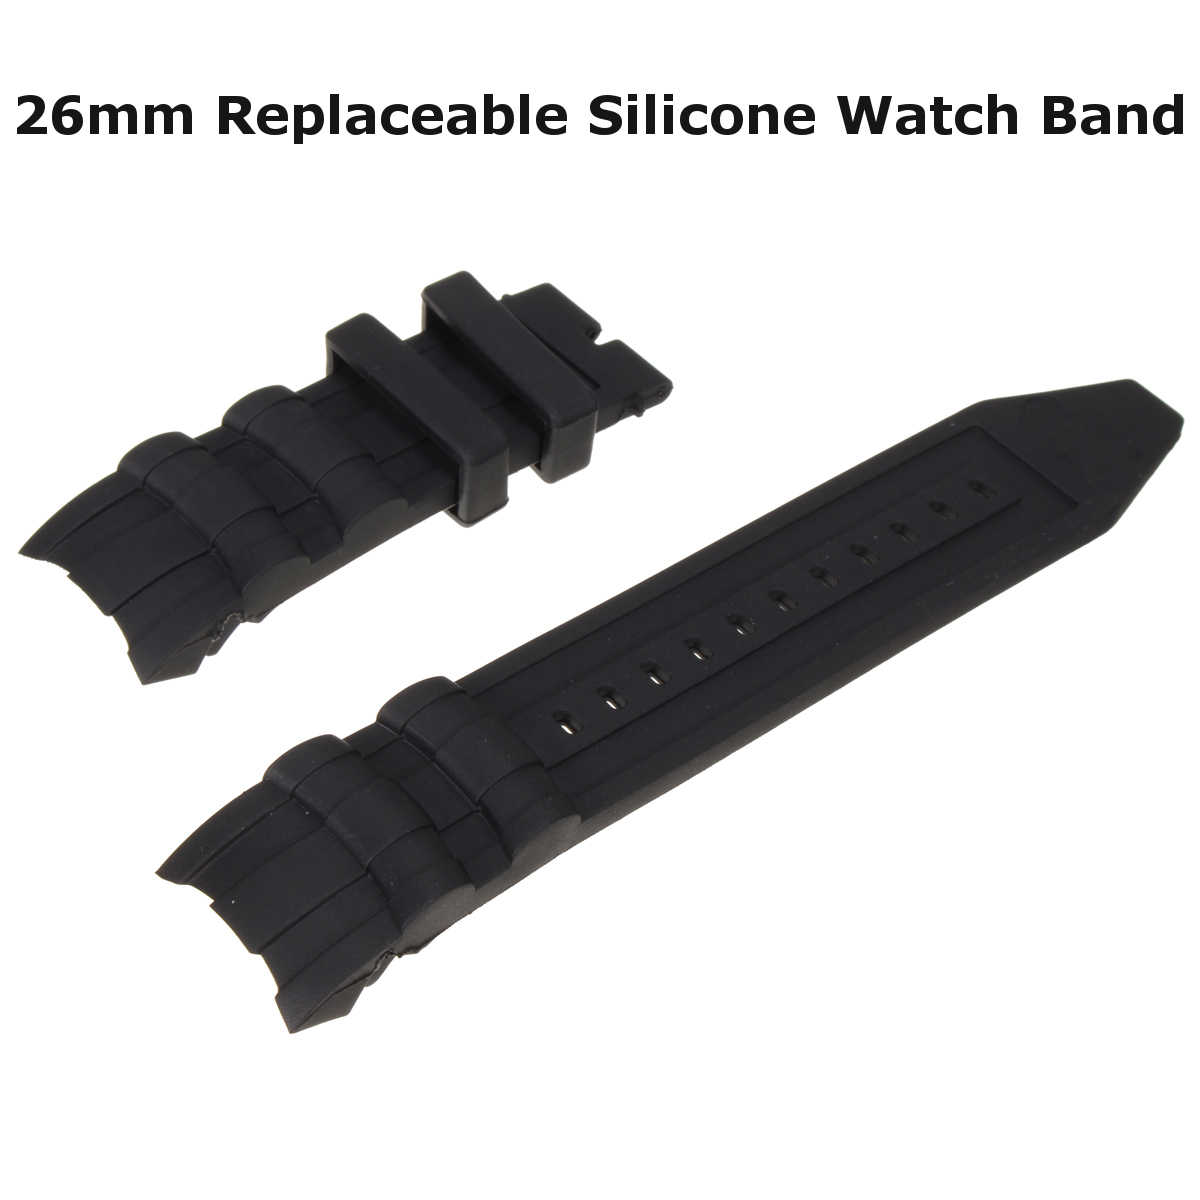 Black Watchband Replacement Soft Silicone Rubber Watch Band Strap Kit For Invicta SUBAQUA Width:26mm Total Length: 145mm